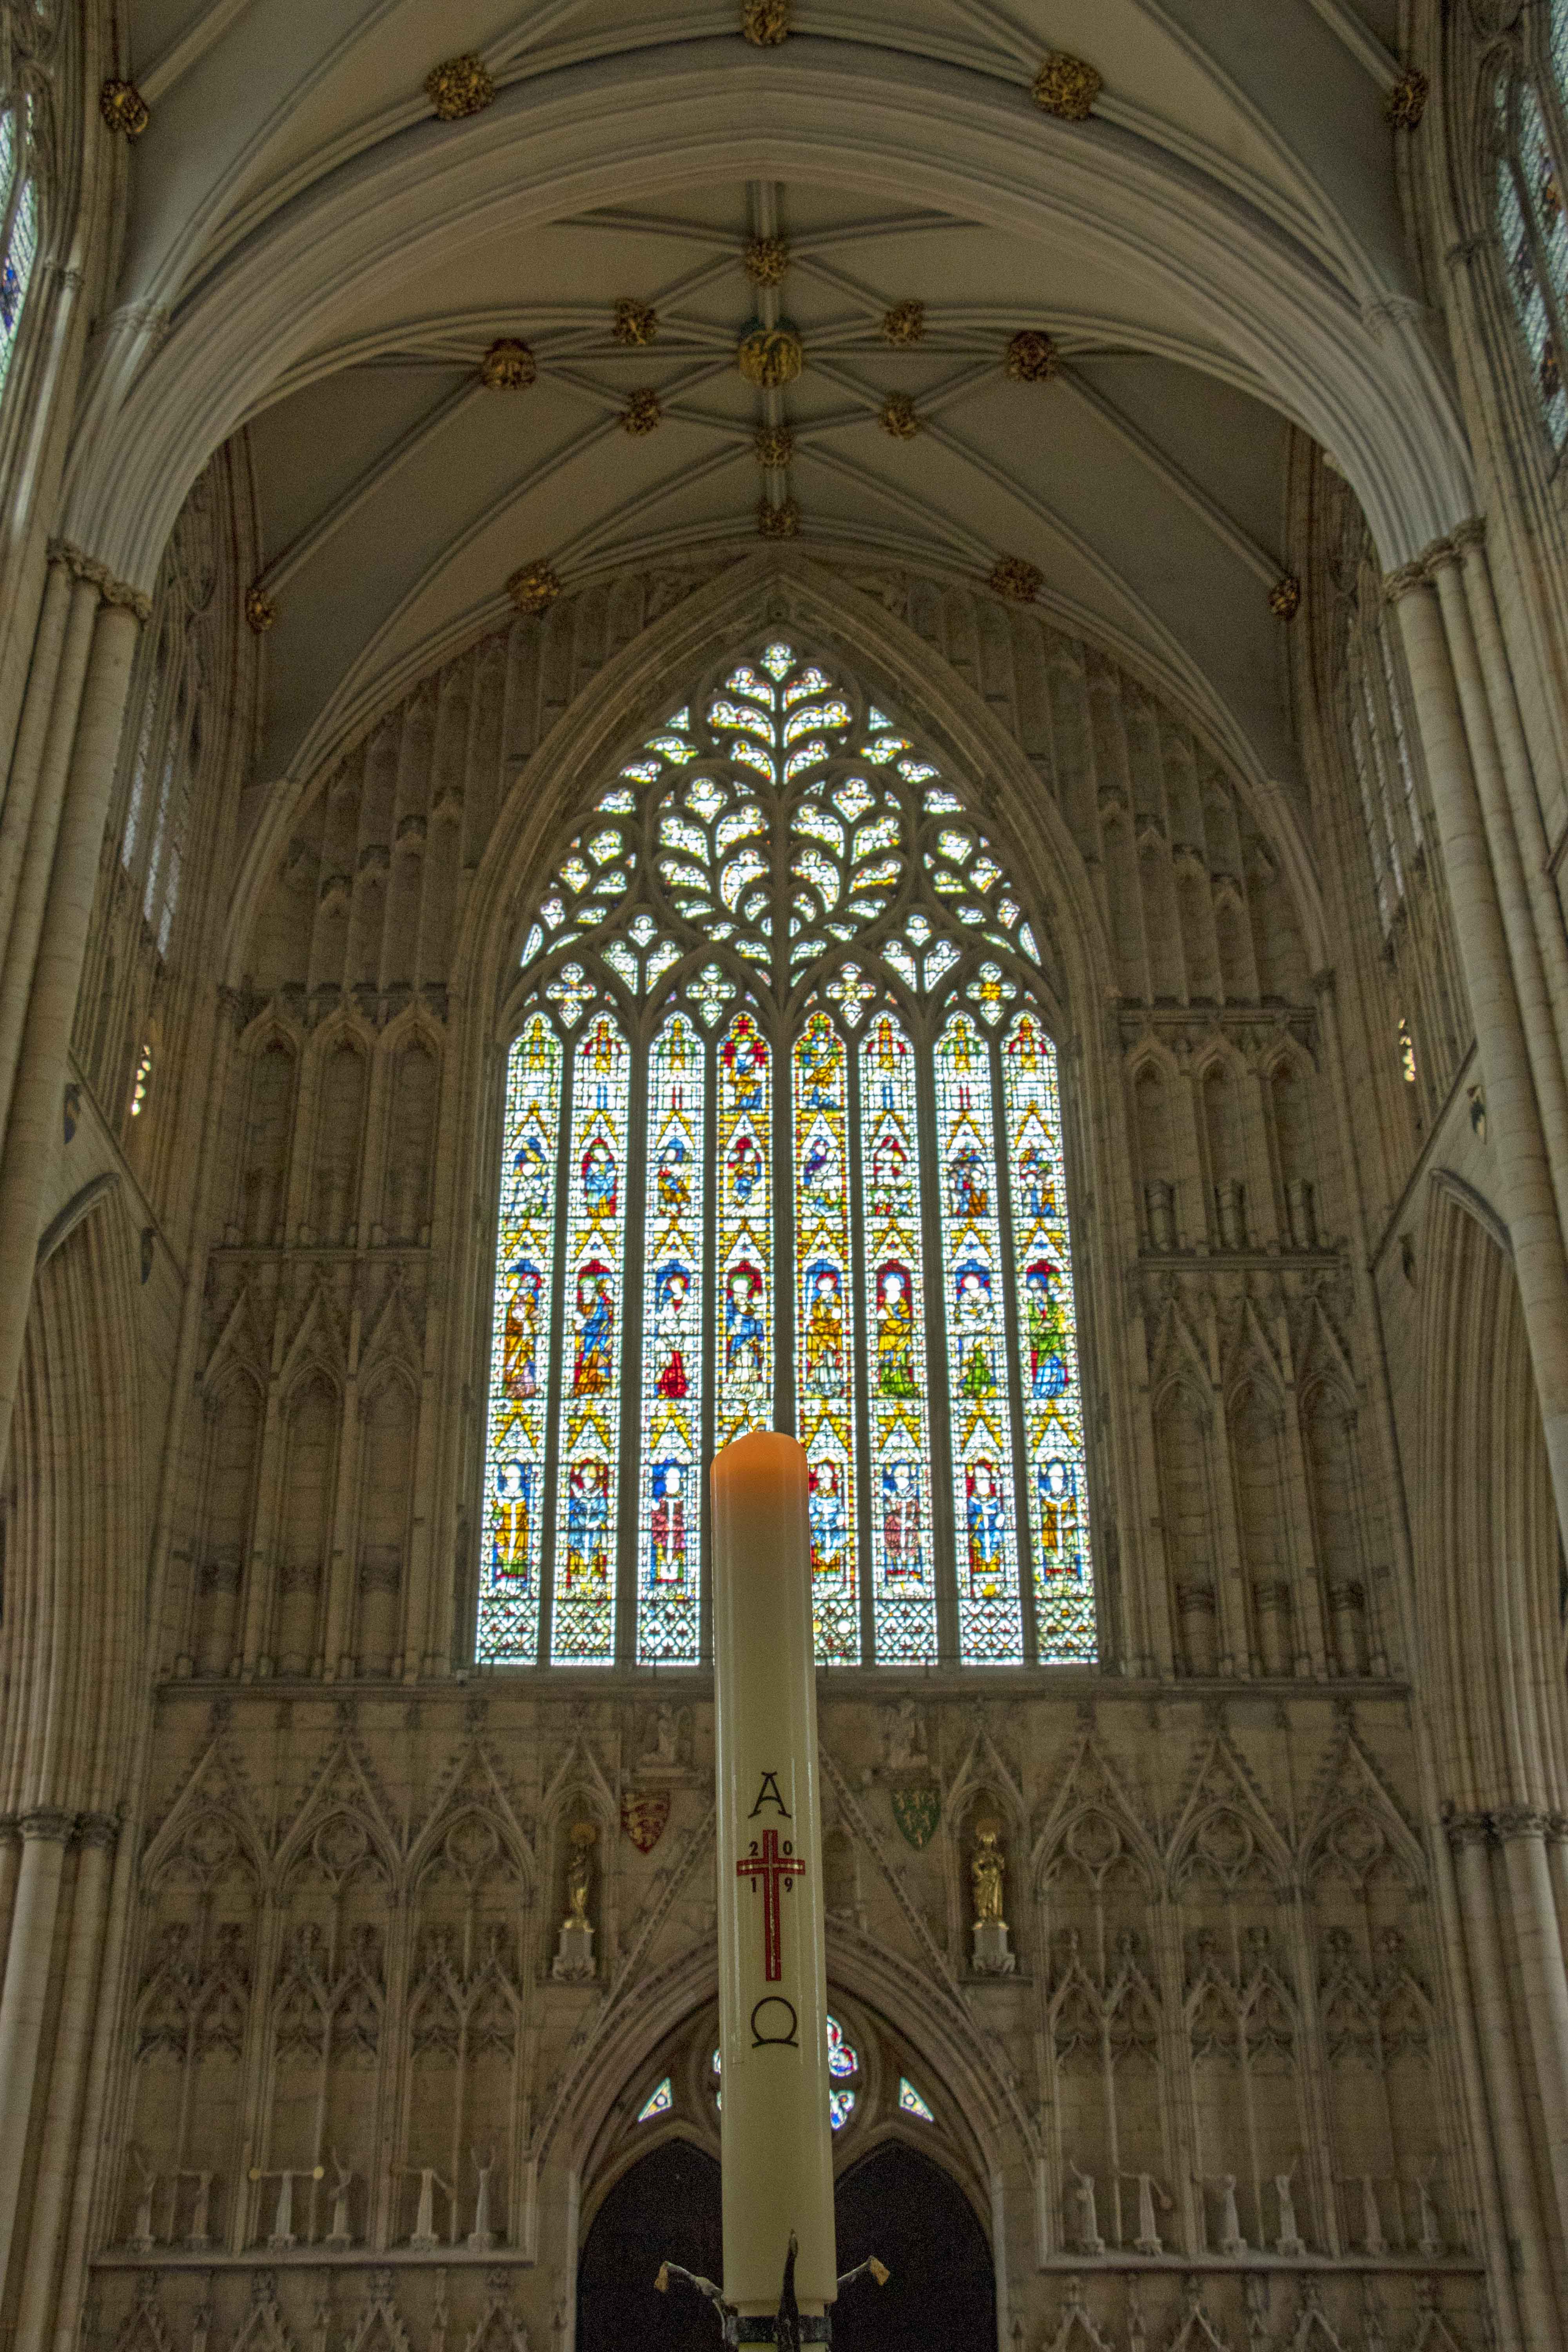 York Minster stained glass window and candle